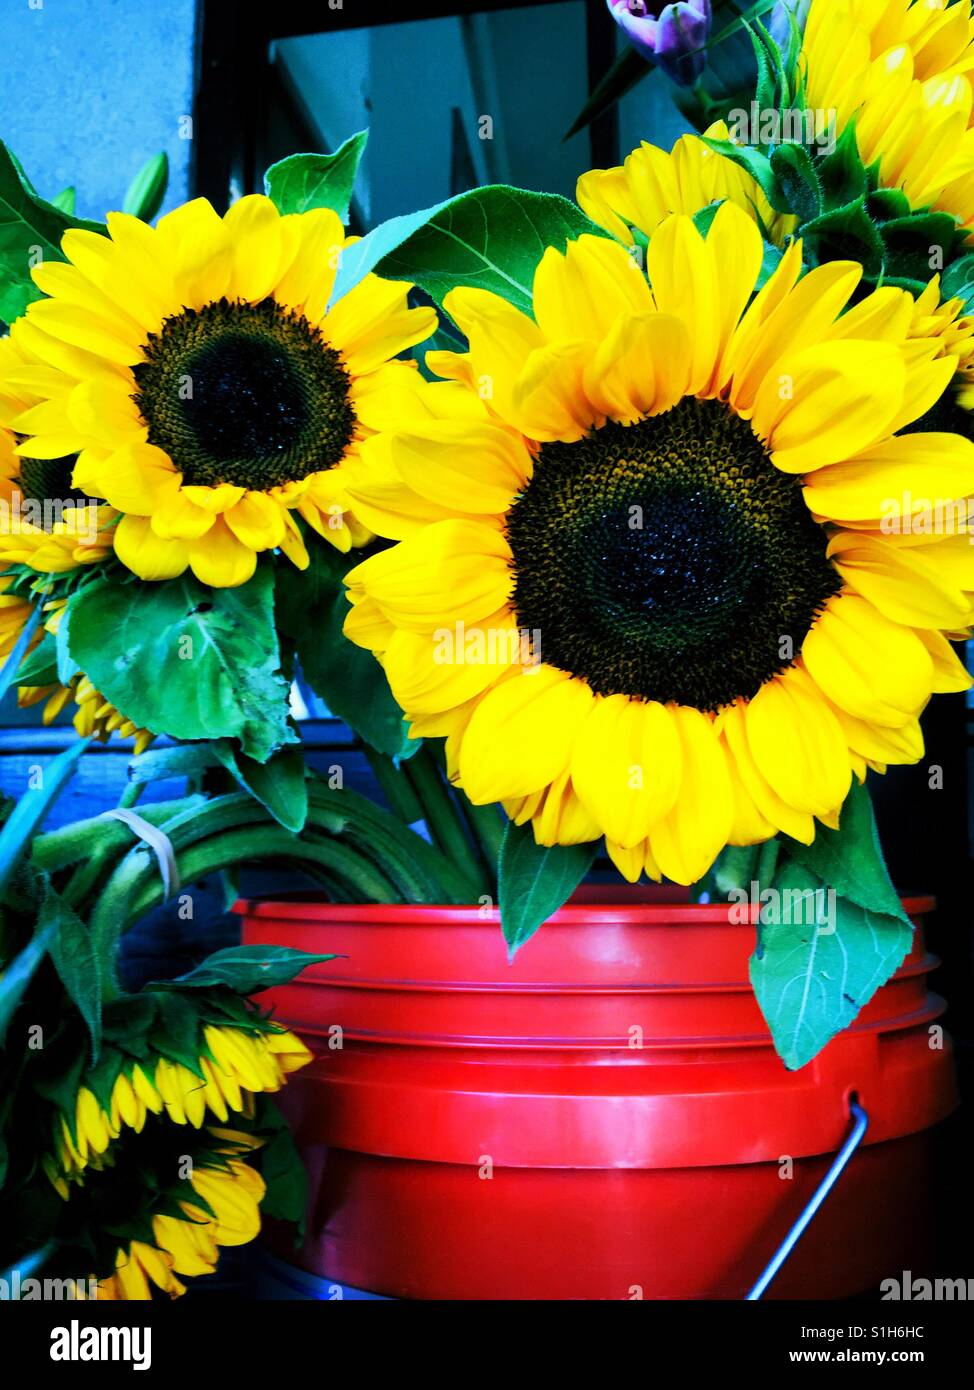 Five Careless Bright Golden Yellow Sunflowers in red and blue buckets, upright and floppy - Stock Image